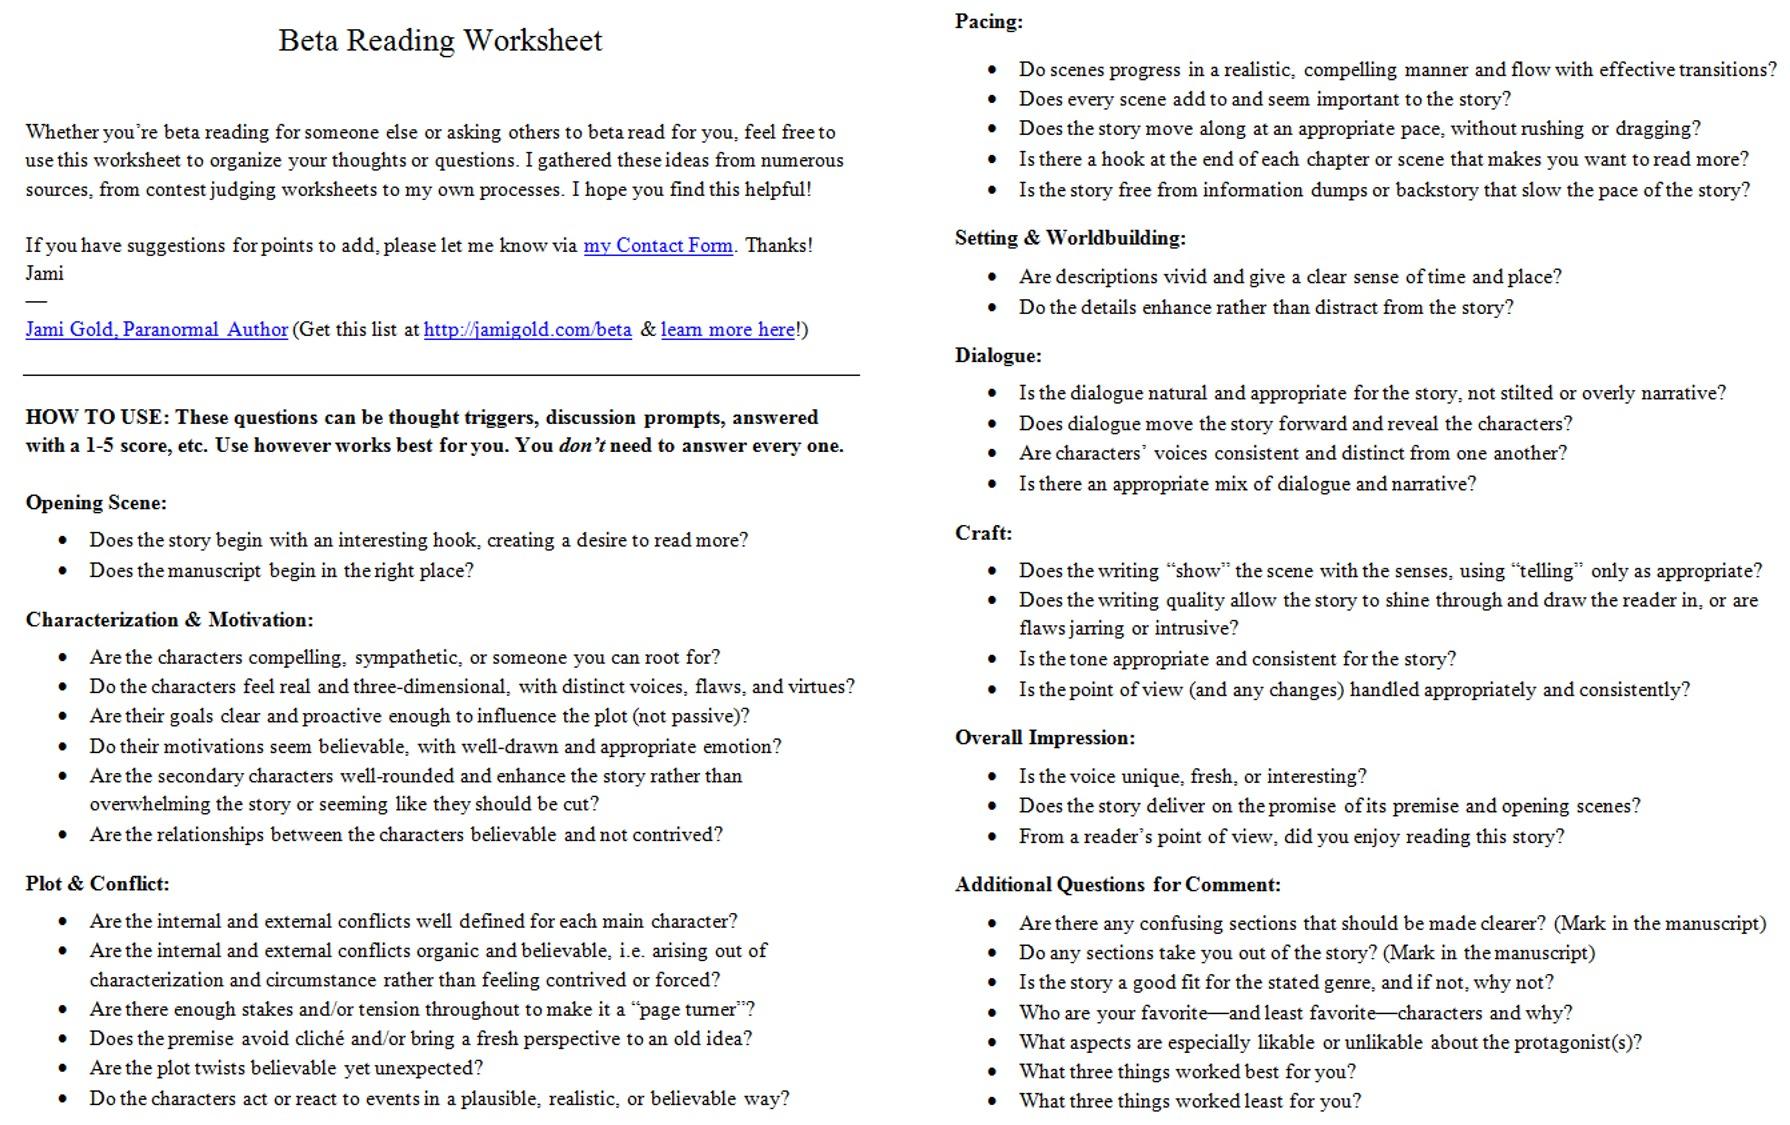 Aldiablosus  Scenic Worksheets For Writers  Jami Gold Paranormal Author With Great Screen Shot Of The Twopage Beta Reading Worksheet With Beautiful Holt Science And Technology Worksheet Answers Also Percent Review Worksheet In Addition Sw Science  Mitosis Worksheet Answers And Math Grade  Worksheets As Well As Rd Grade Math Problem Solving Worksheets Additionally Vocabulary Matching Worksheet Generator From Jamigoldcom With Aldiablosus  Great Worksheets For Writers  Jami Gold Paranormal Author With Beautiful Screen Shot Of The Twopage Beta Reading Worksheet And Scenic Holt Science And Technology Worksheet Answers Also Percent Review Worksheet In Addition Sw Science  Mitosis Worksheet Answers From Jamigoldcom